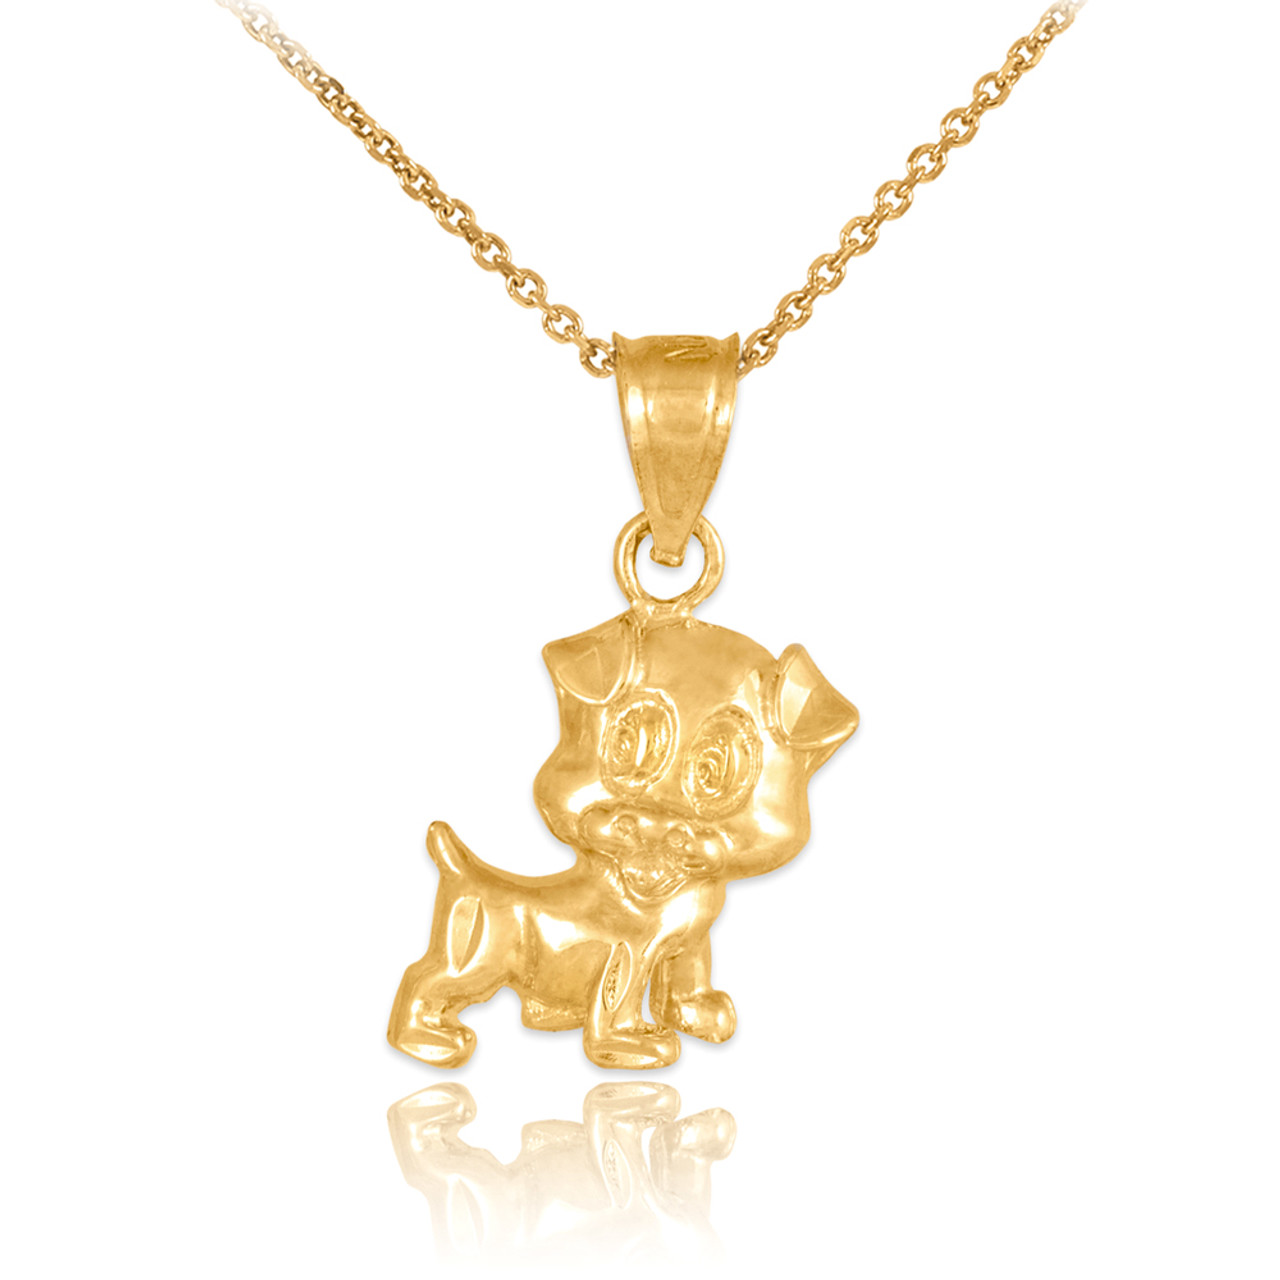 Gold Cute Puppy Charm